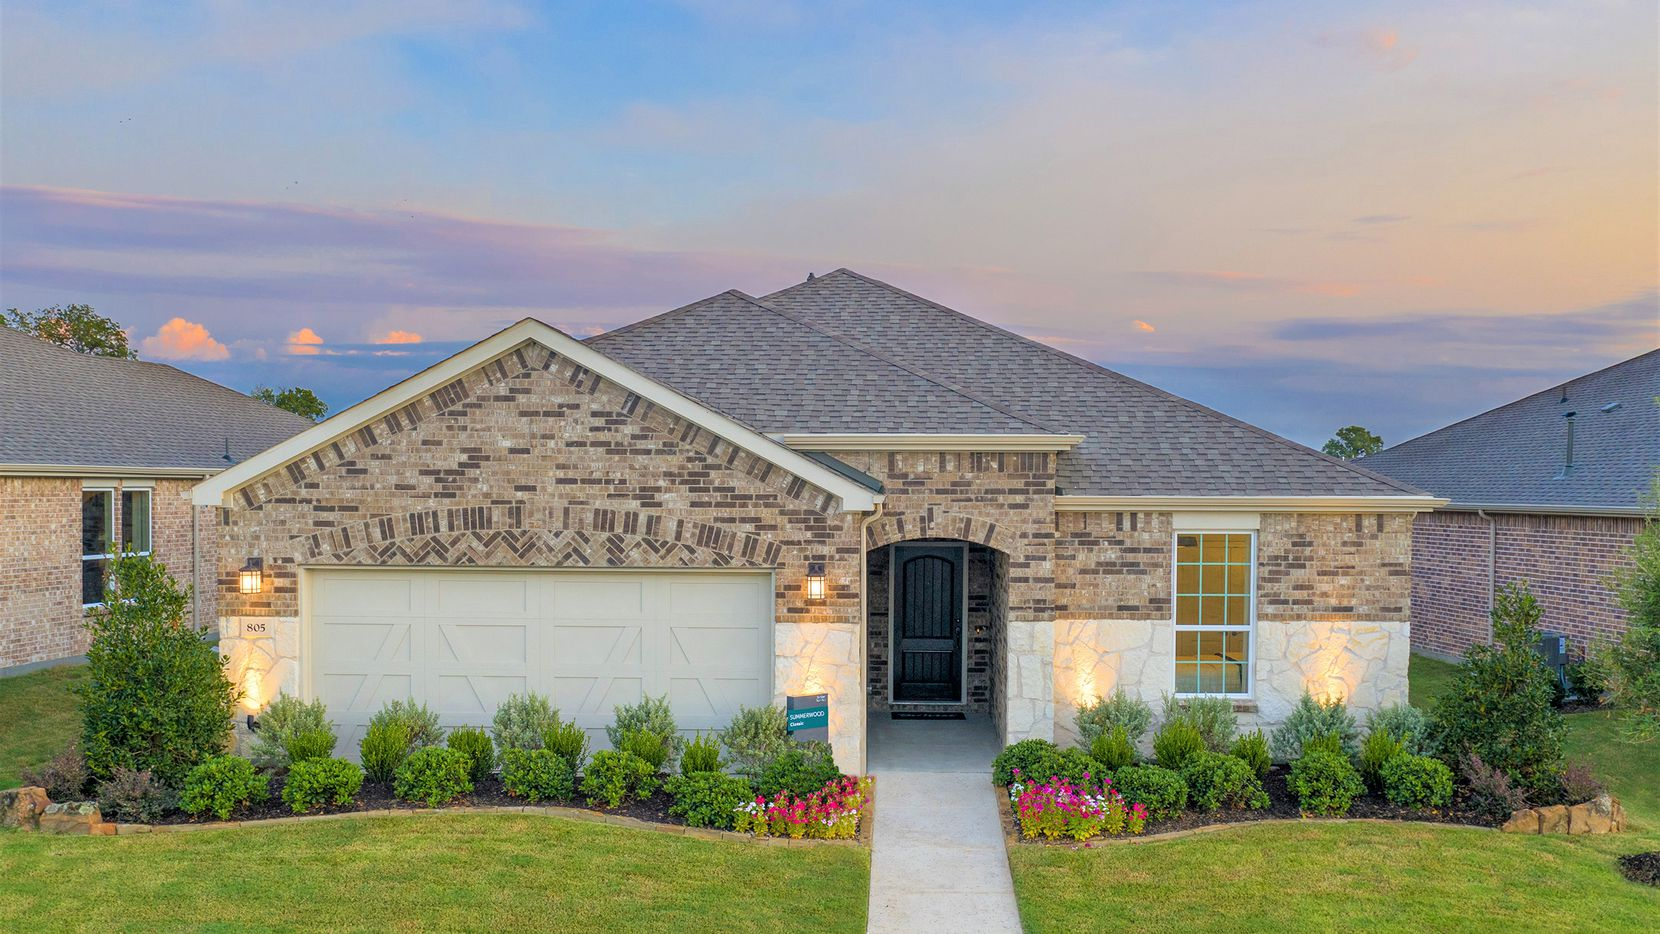 Del Webb's Frisco Lakes, Union Park in Little Elm and Trinity Falls in McKinney communities focus on an active lifestyle for adults ages 55-plus.